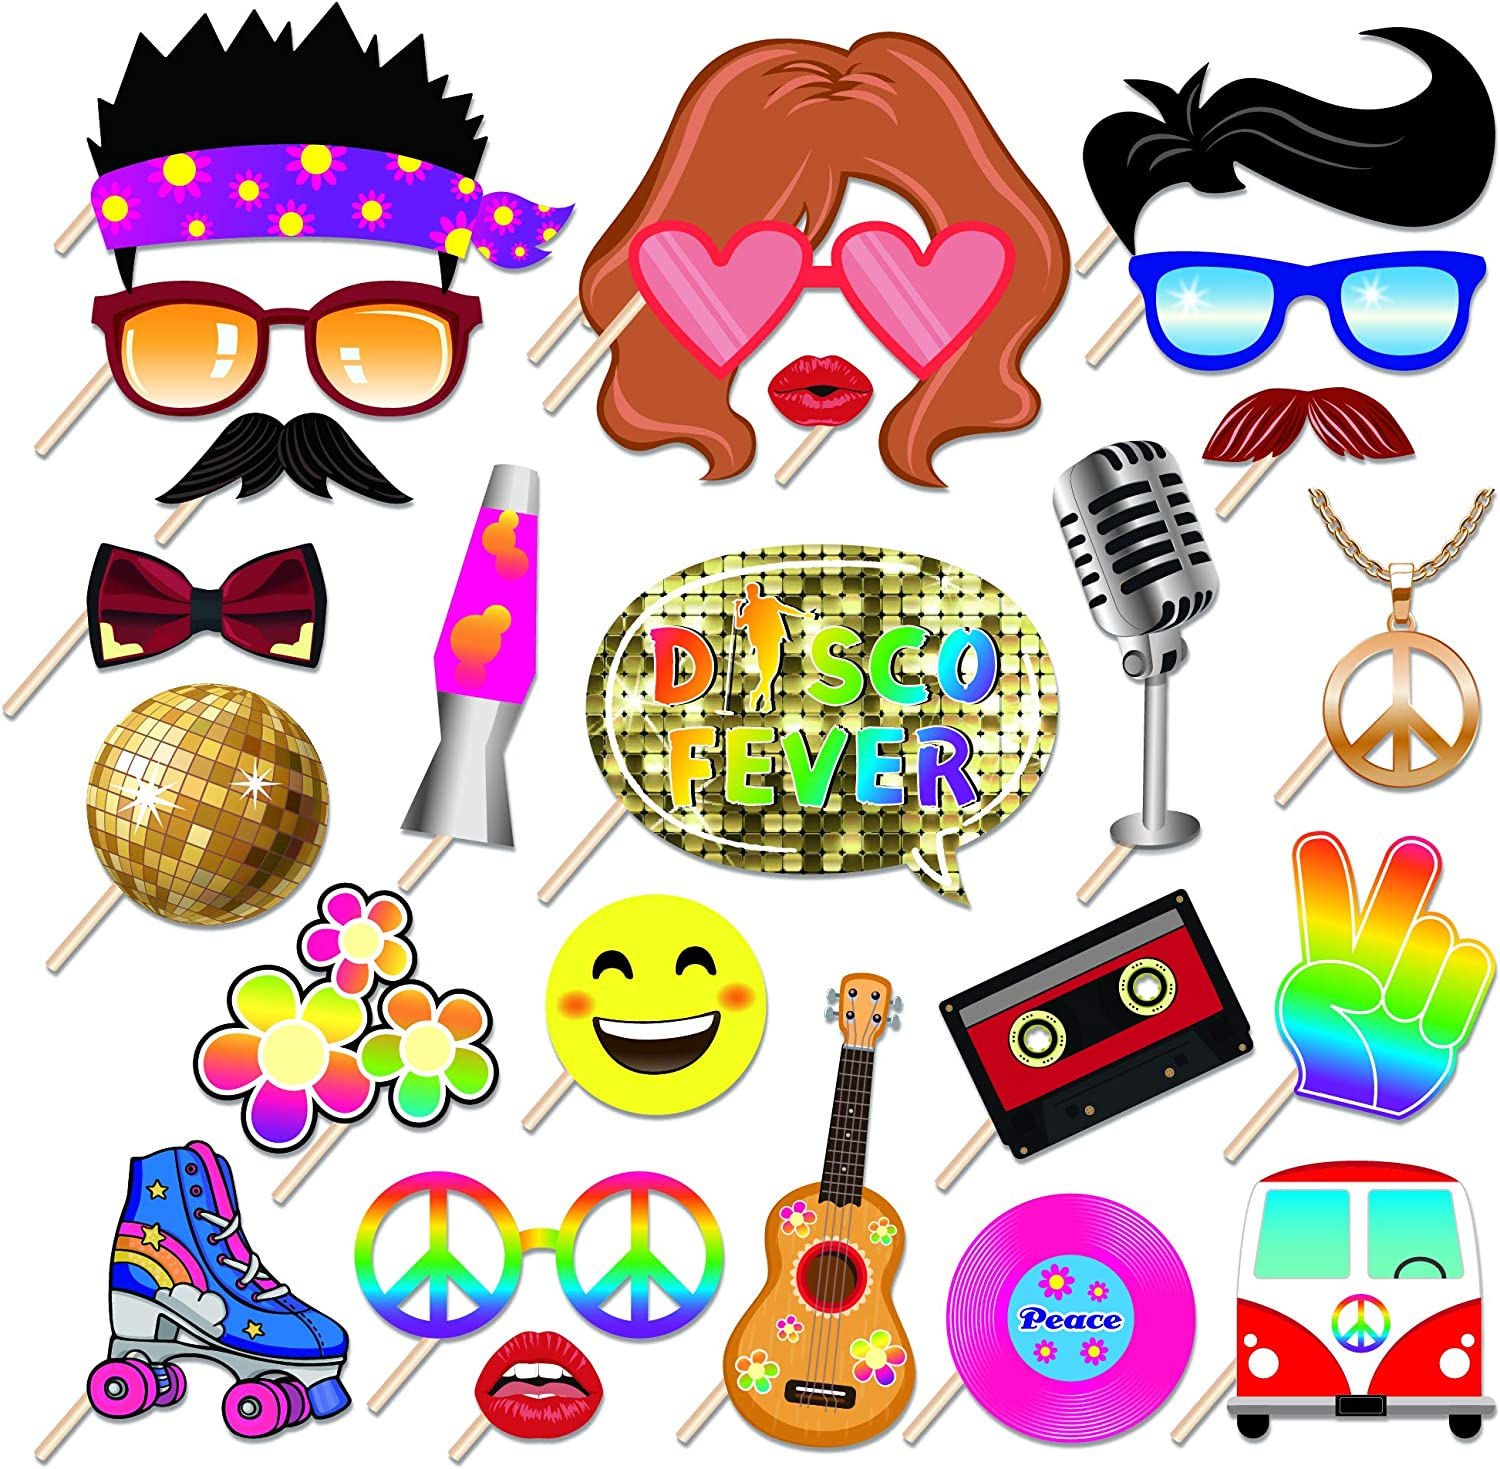 Amazon Com Kristin Paradise 25pcs Disco Photo Booth Props With Stick 50 S 60 S 70 S 80 S Theme Selfie Props Retro Birthday Party Supplies Hippie Photography Backdrop Decorations Home Kitchen